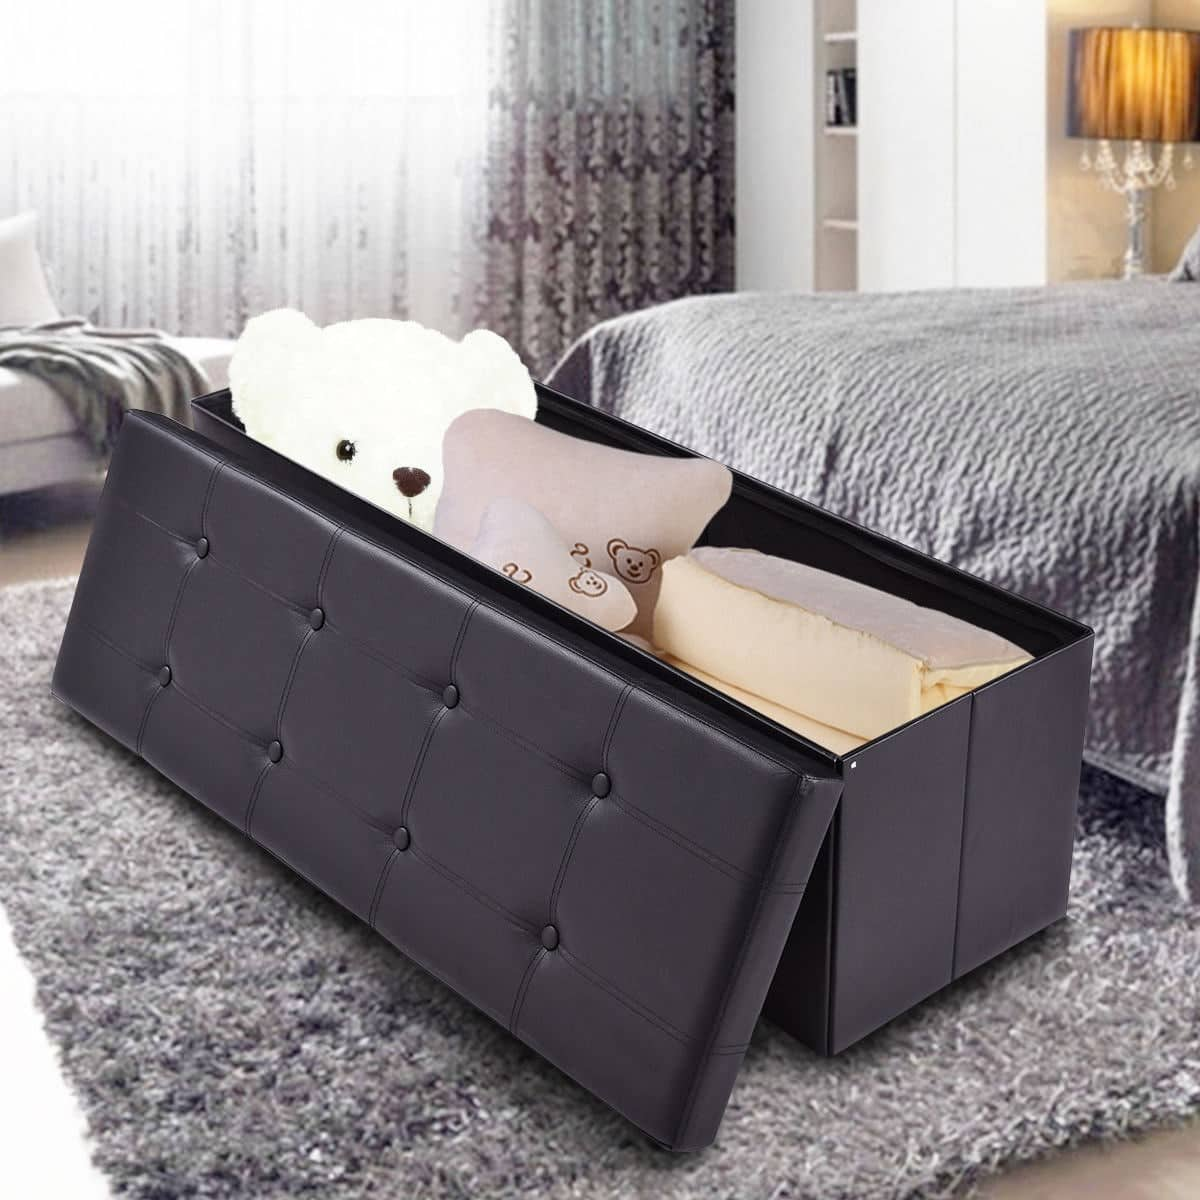 "Costway 45"" Large Folding Ottoman Storage Seat - $39.95 + Free Shipping"